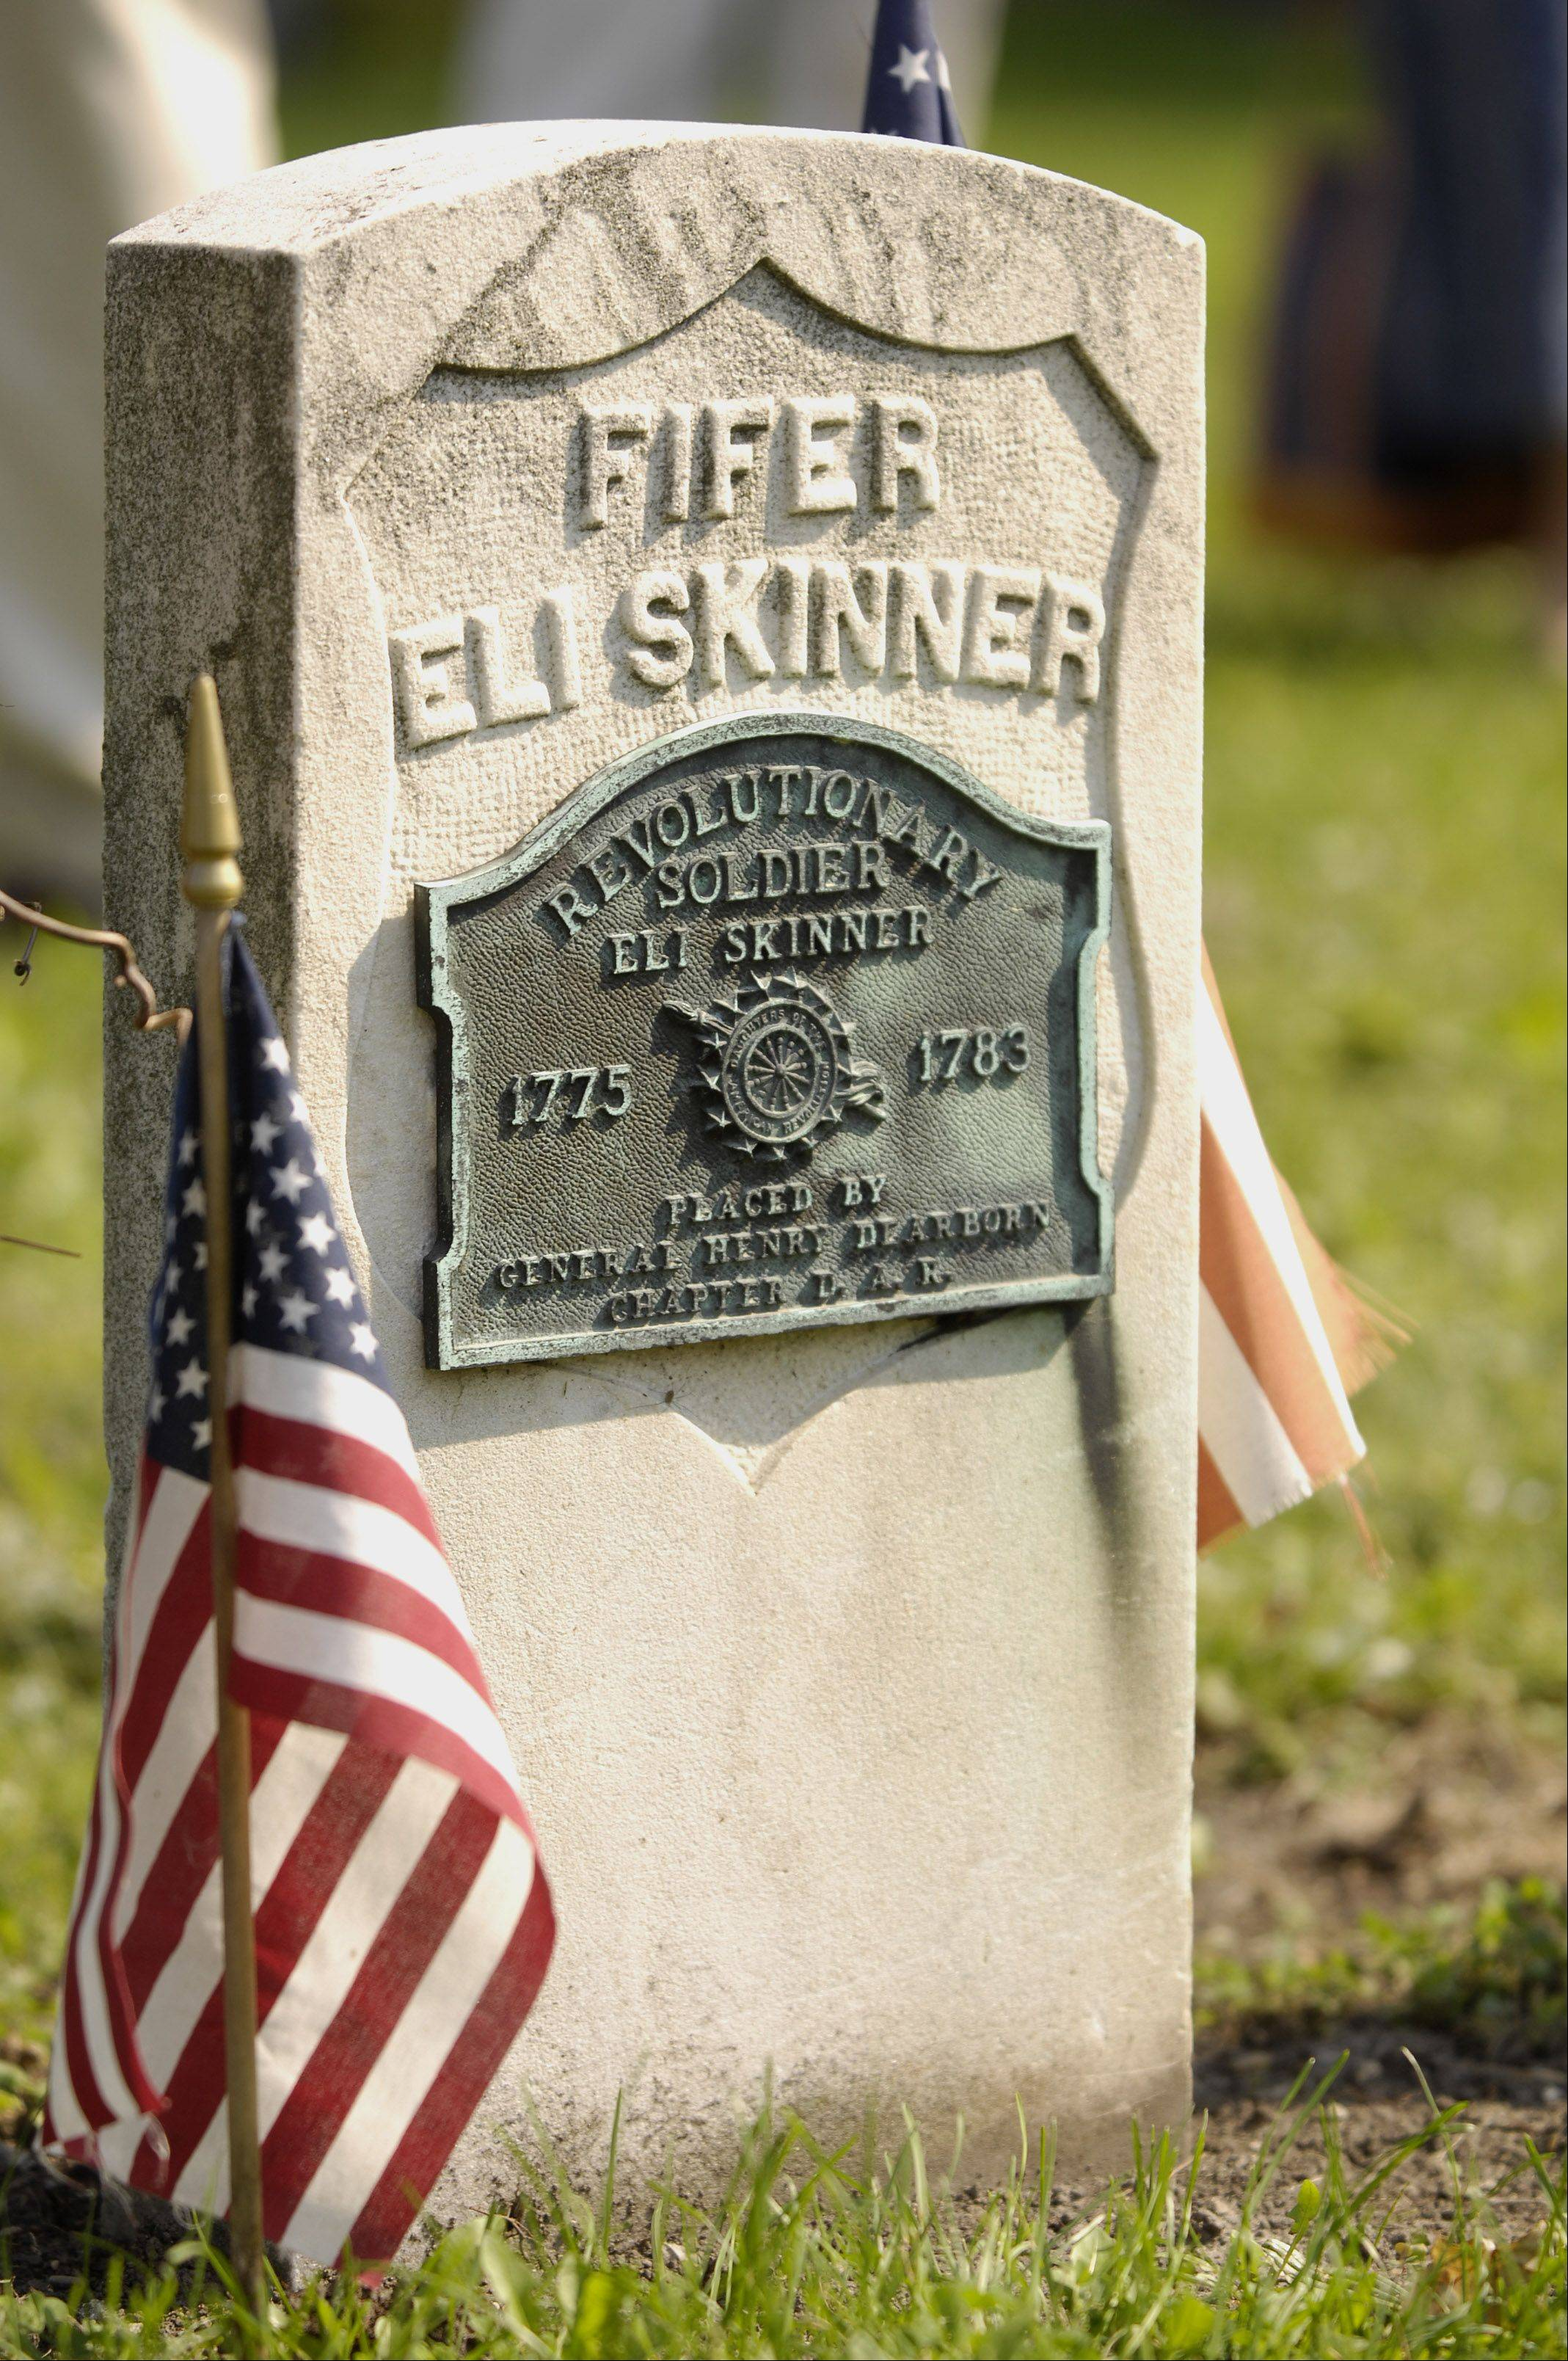 Cemetery markers to honor Revolutionary War veterans